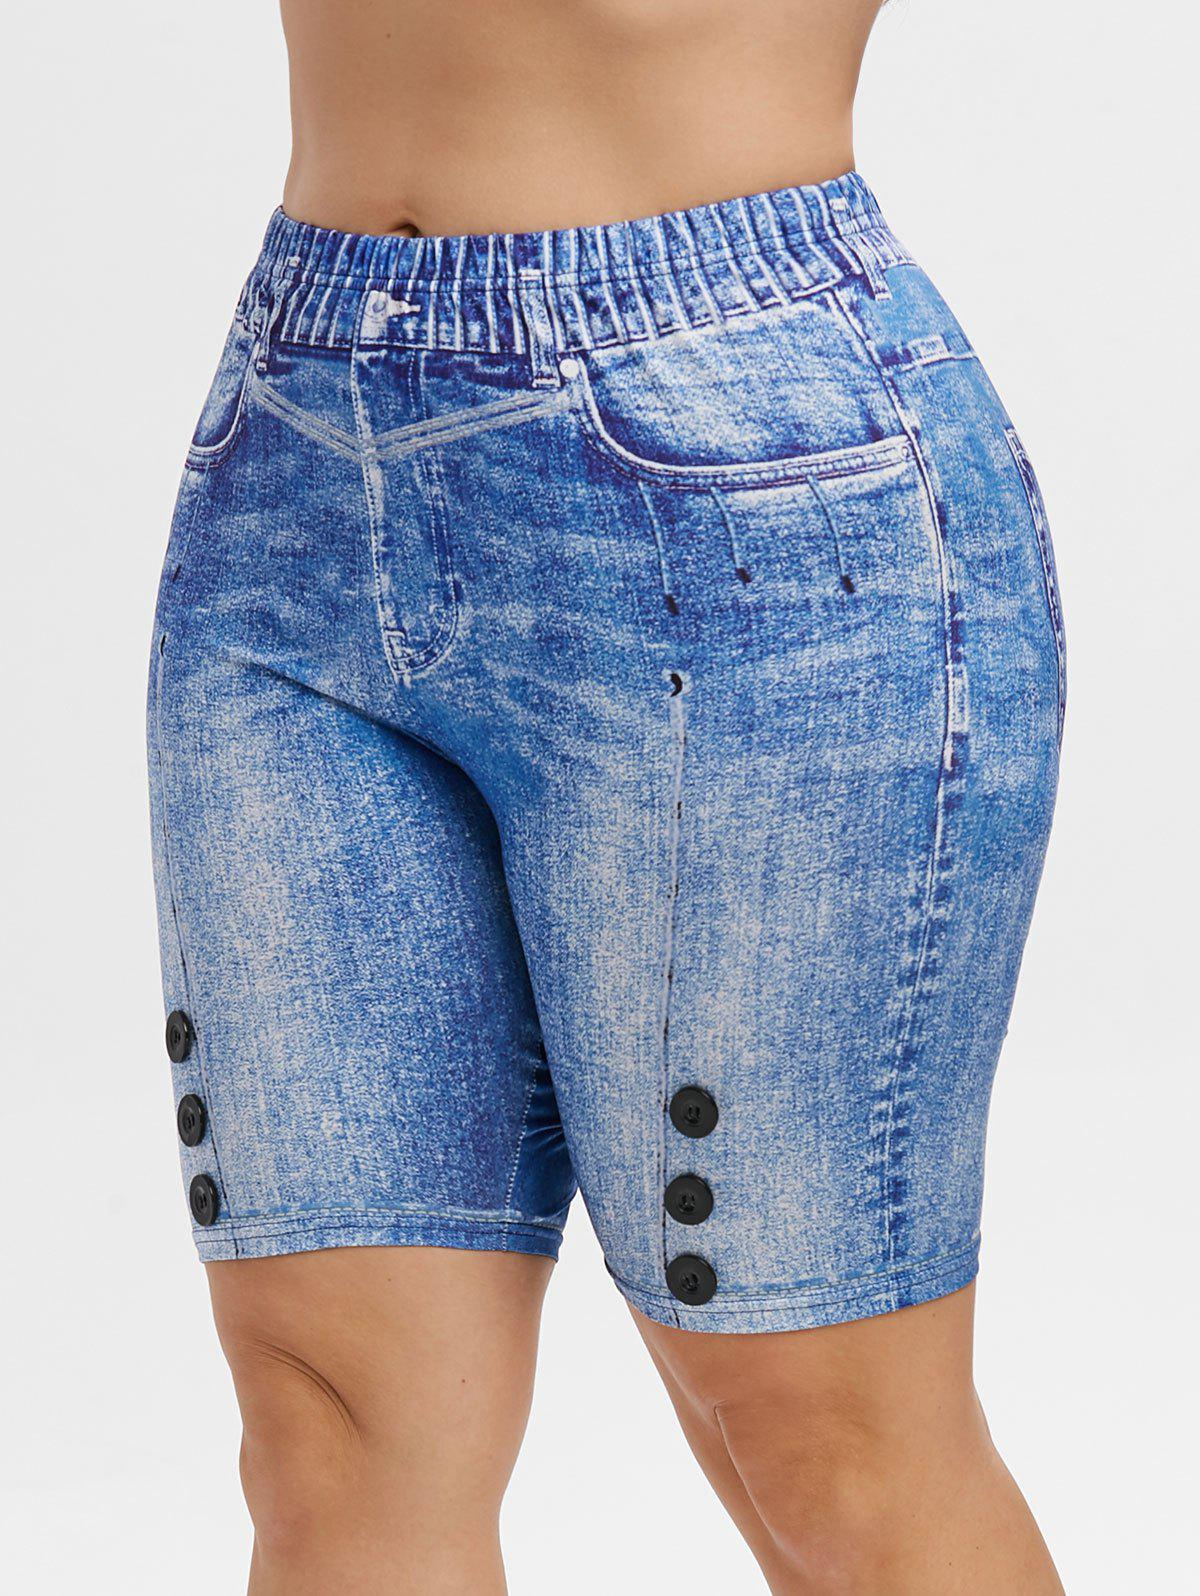 Hot High Waisted 3D Printed Knee Length Plus Size Jeggings